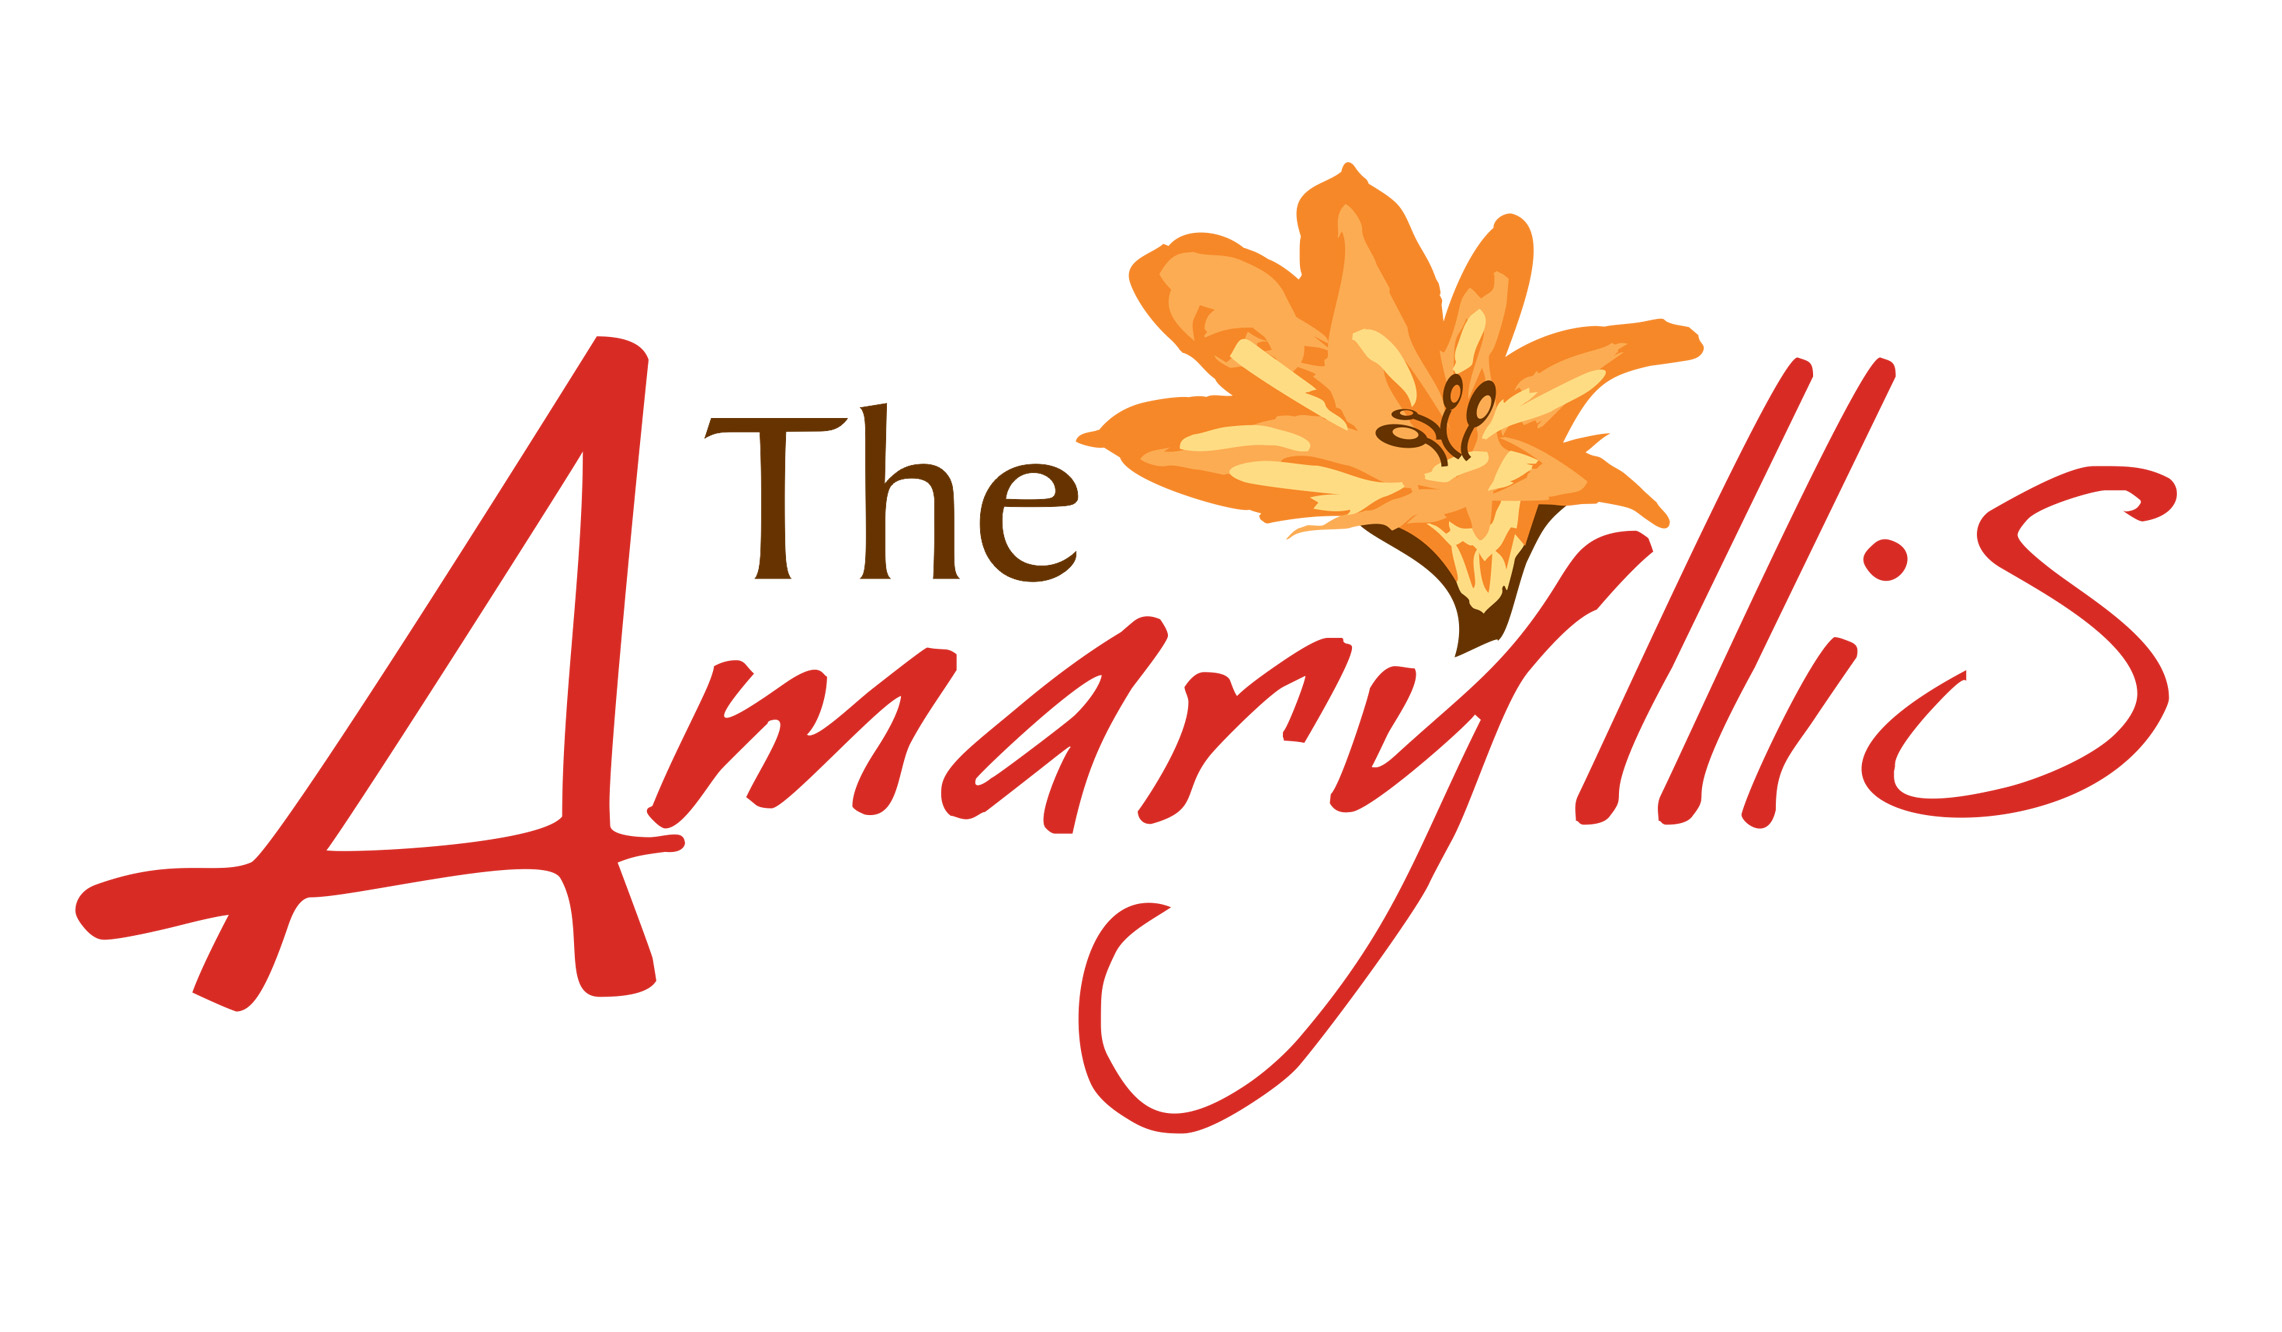 The Amaryllis property logo